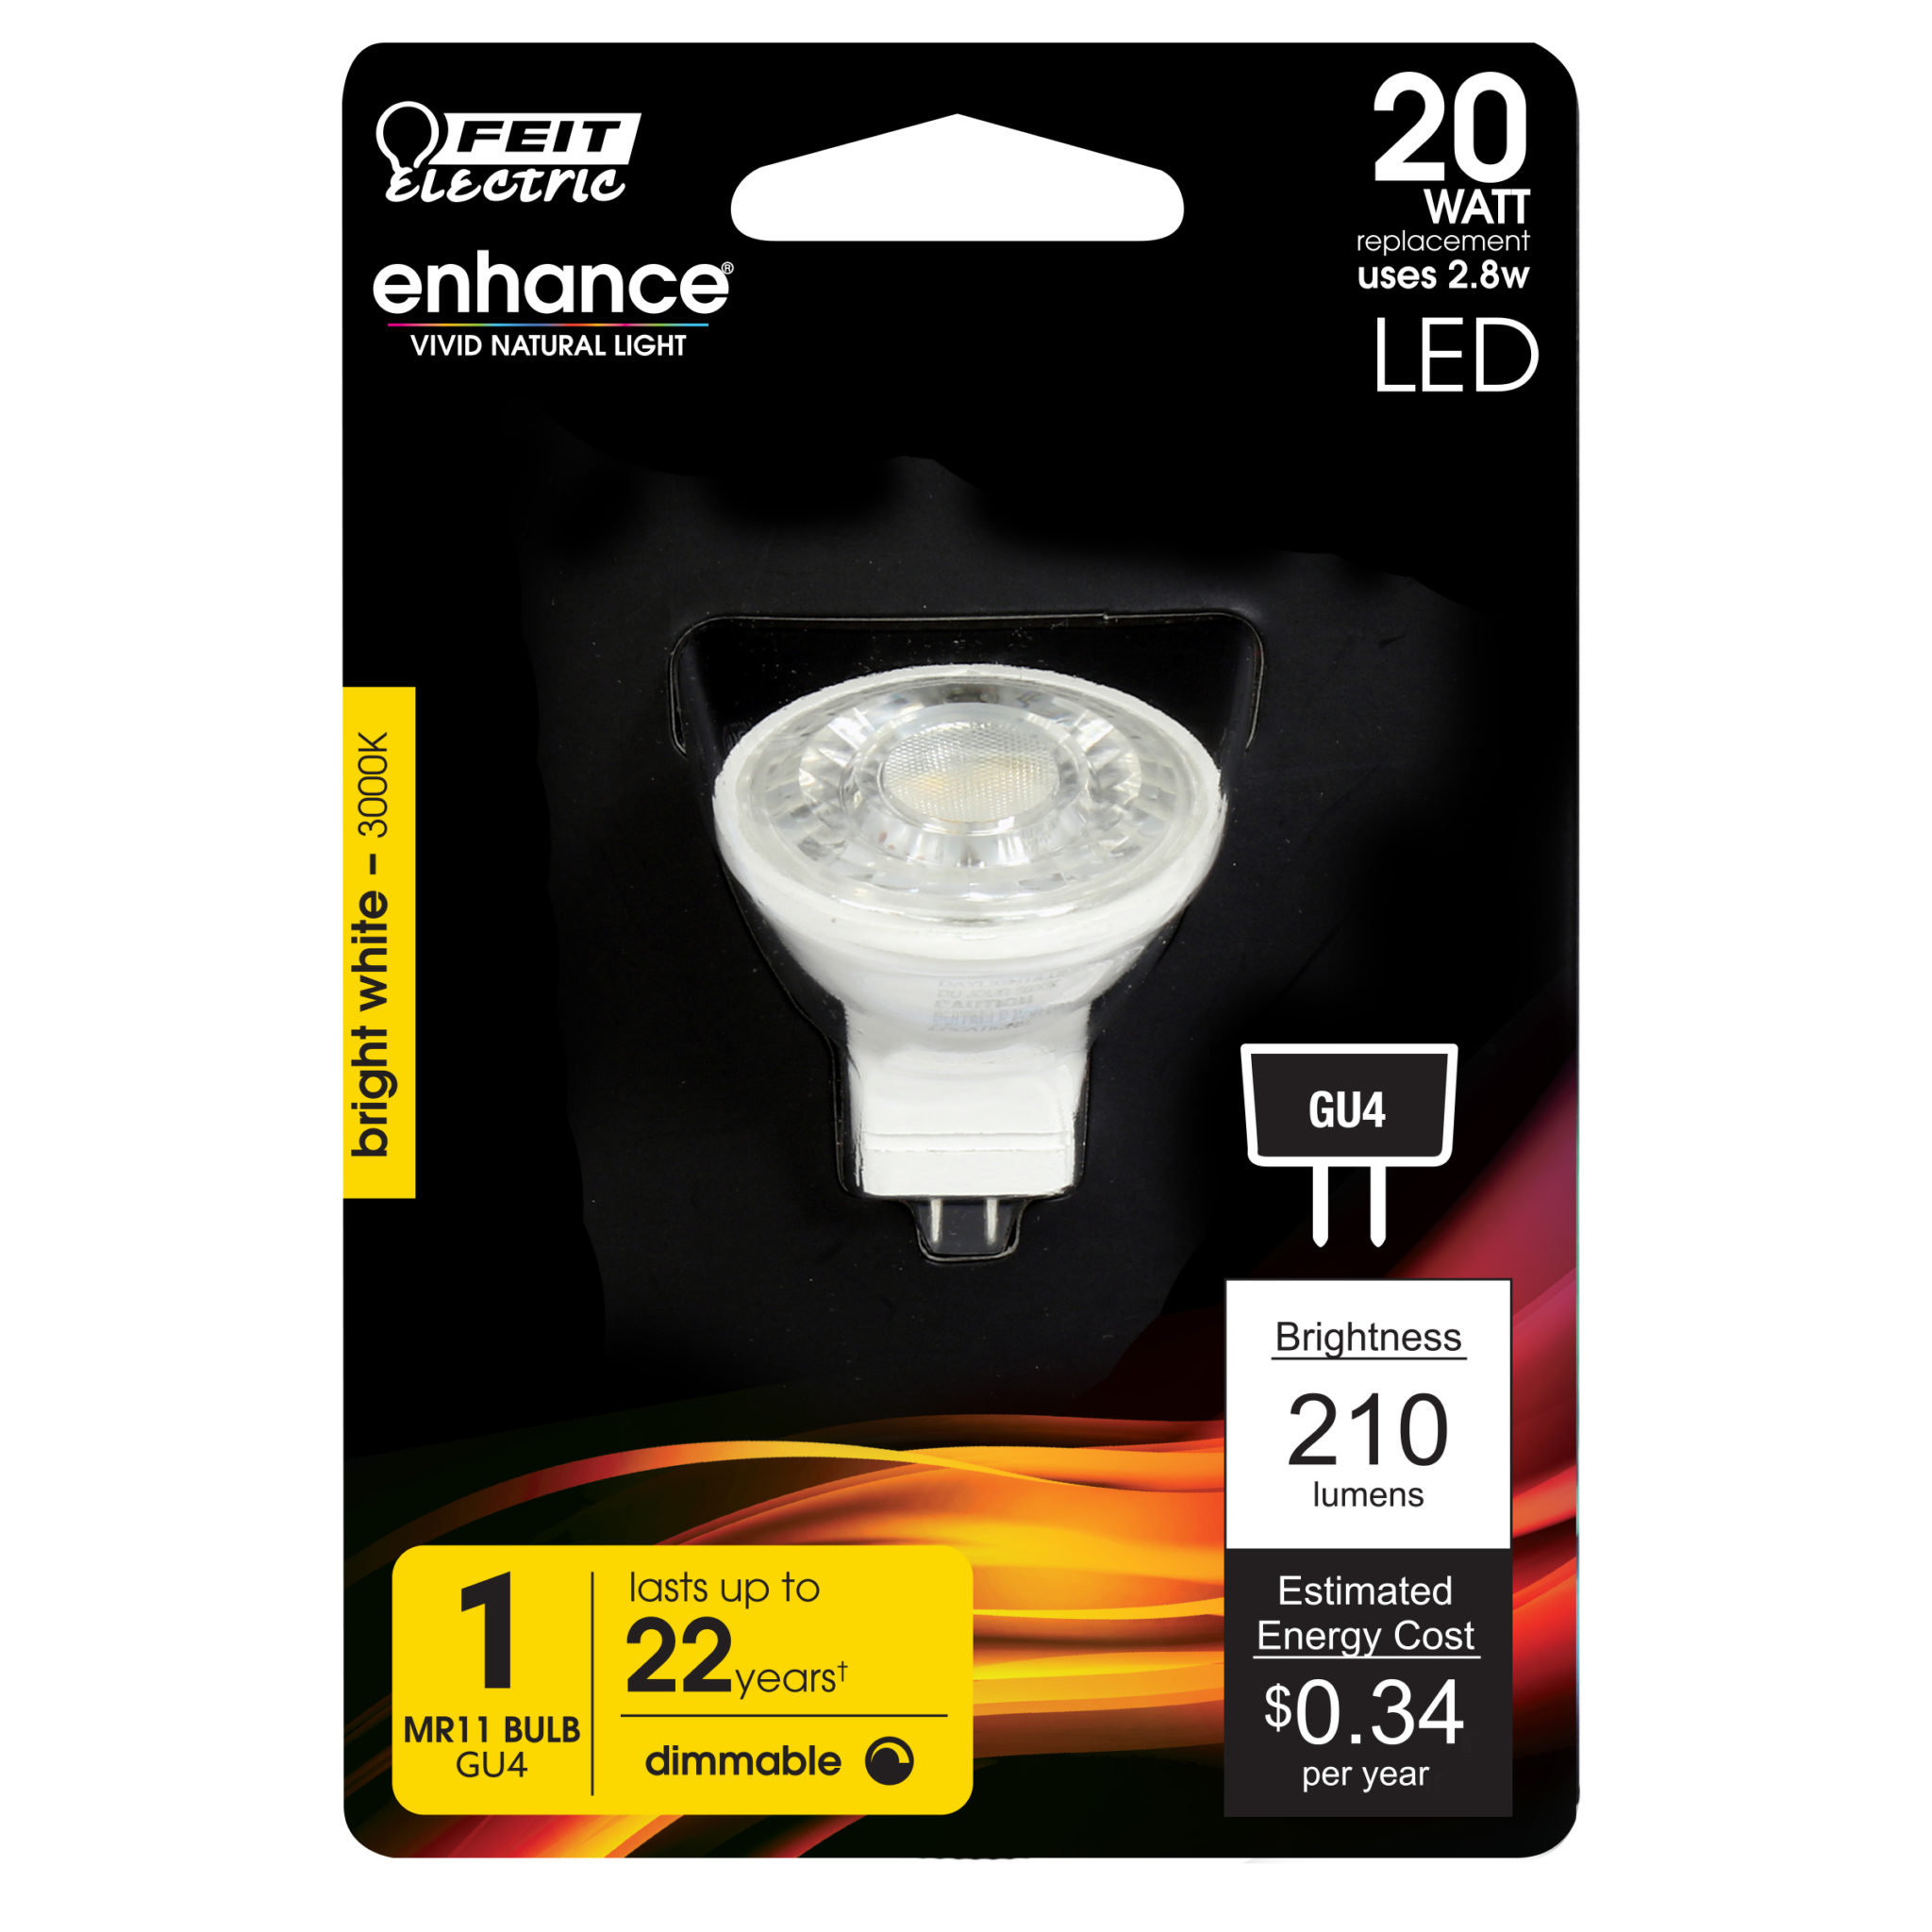 210 Lumen 3000k Dimmable Led Feit Electric